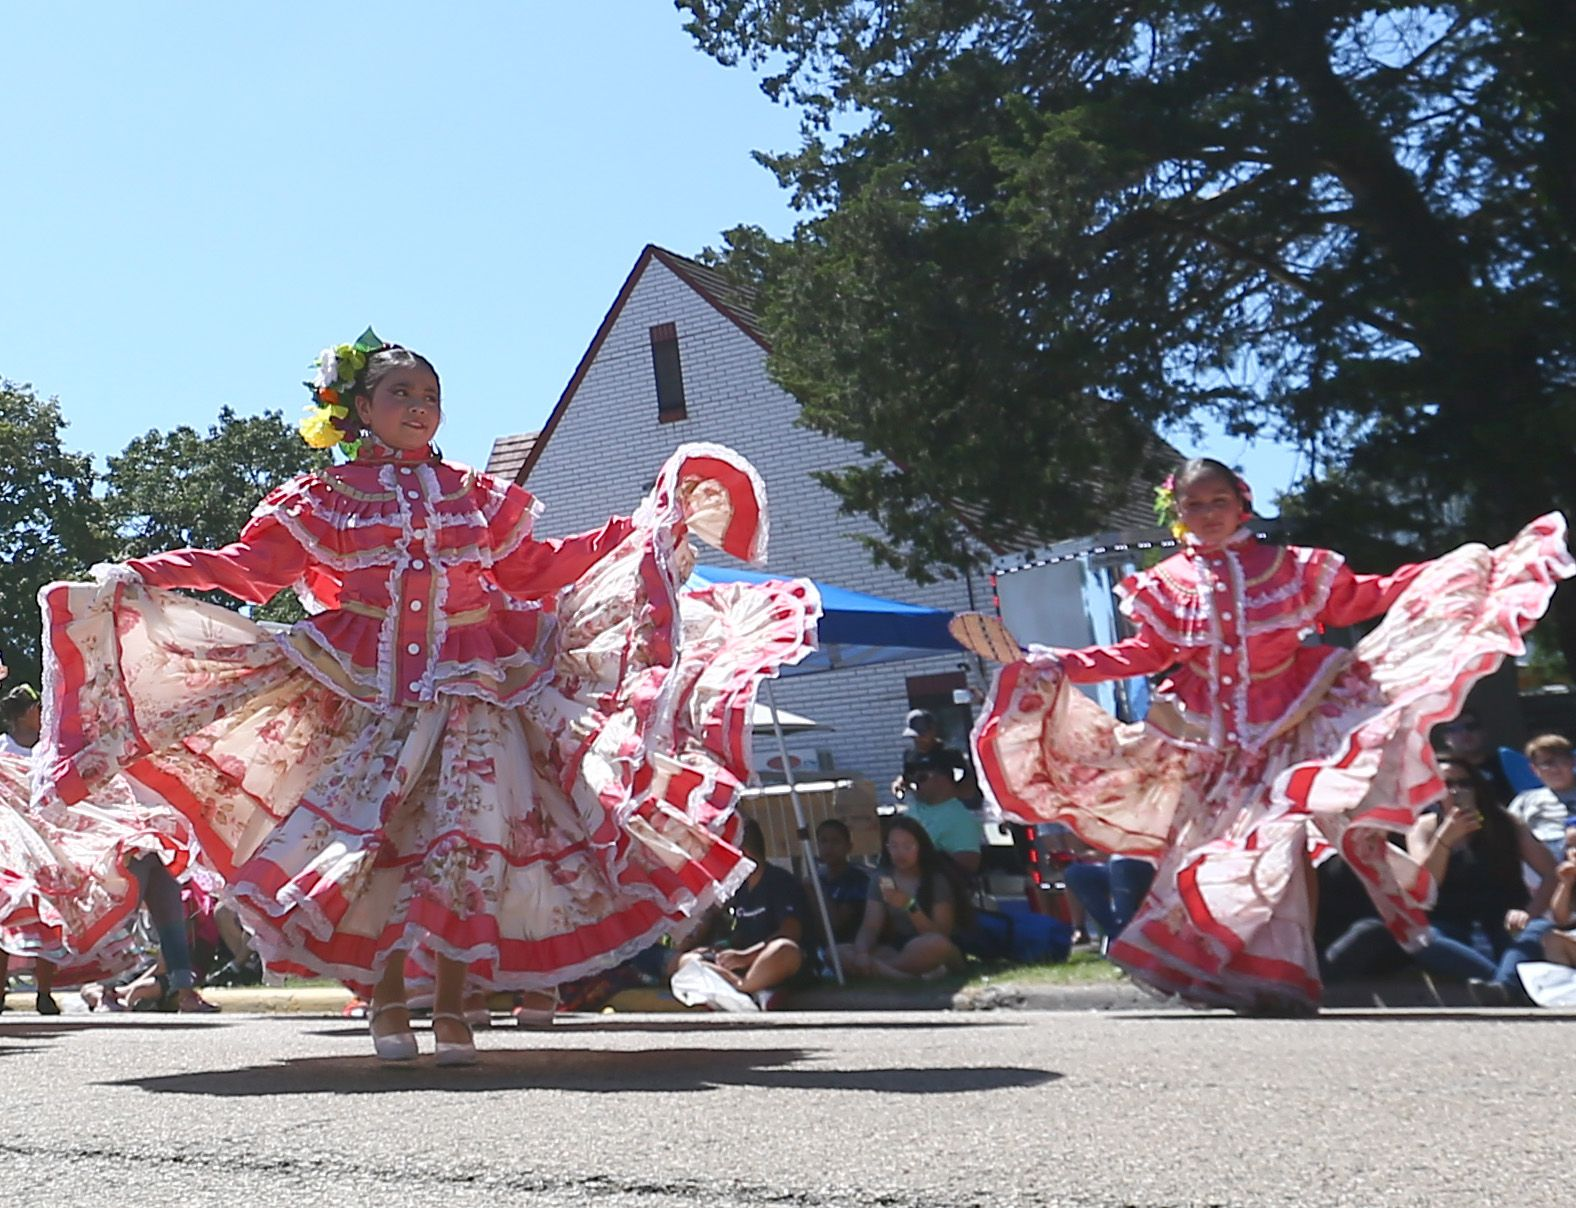 Women from the Ballet Folklorico De Colores dance during the during the 74th annual Sweet Corn Festival Parade in Mendota on Sunday Aug. 15, 2021.